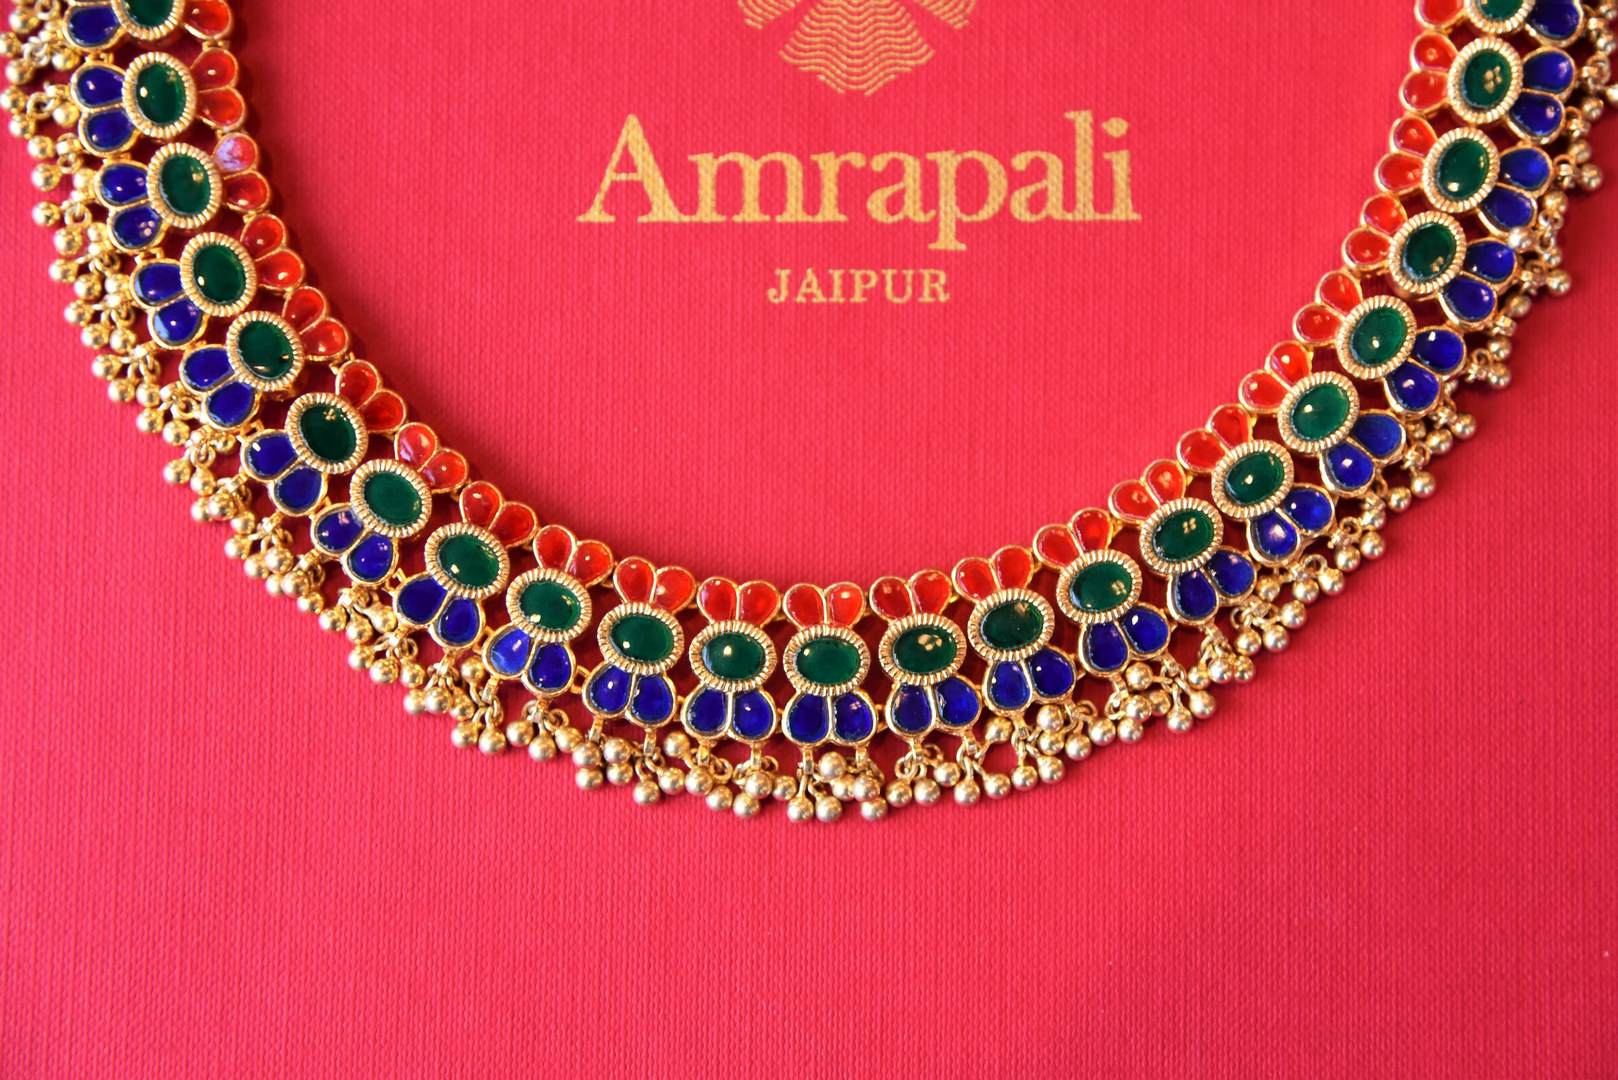 Shop Amrapali silver gold-plated multicolored glass necklace set online in USA from Pure Elegance. Complete your traditional look with an exclusive collection of Indian traditional jewelry, silver gold plated necklaces, wedding jewelry available at our exclusive Indian fashion store in USA and also on our online store. Shop now.-necklace